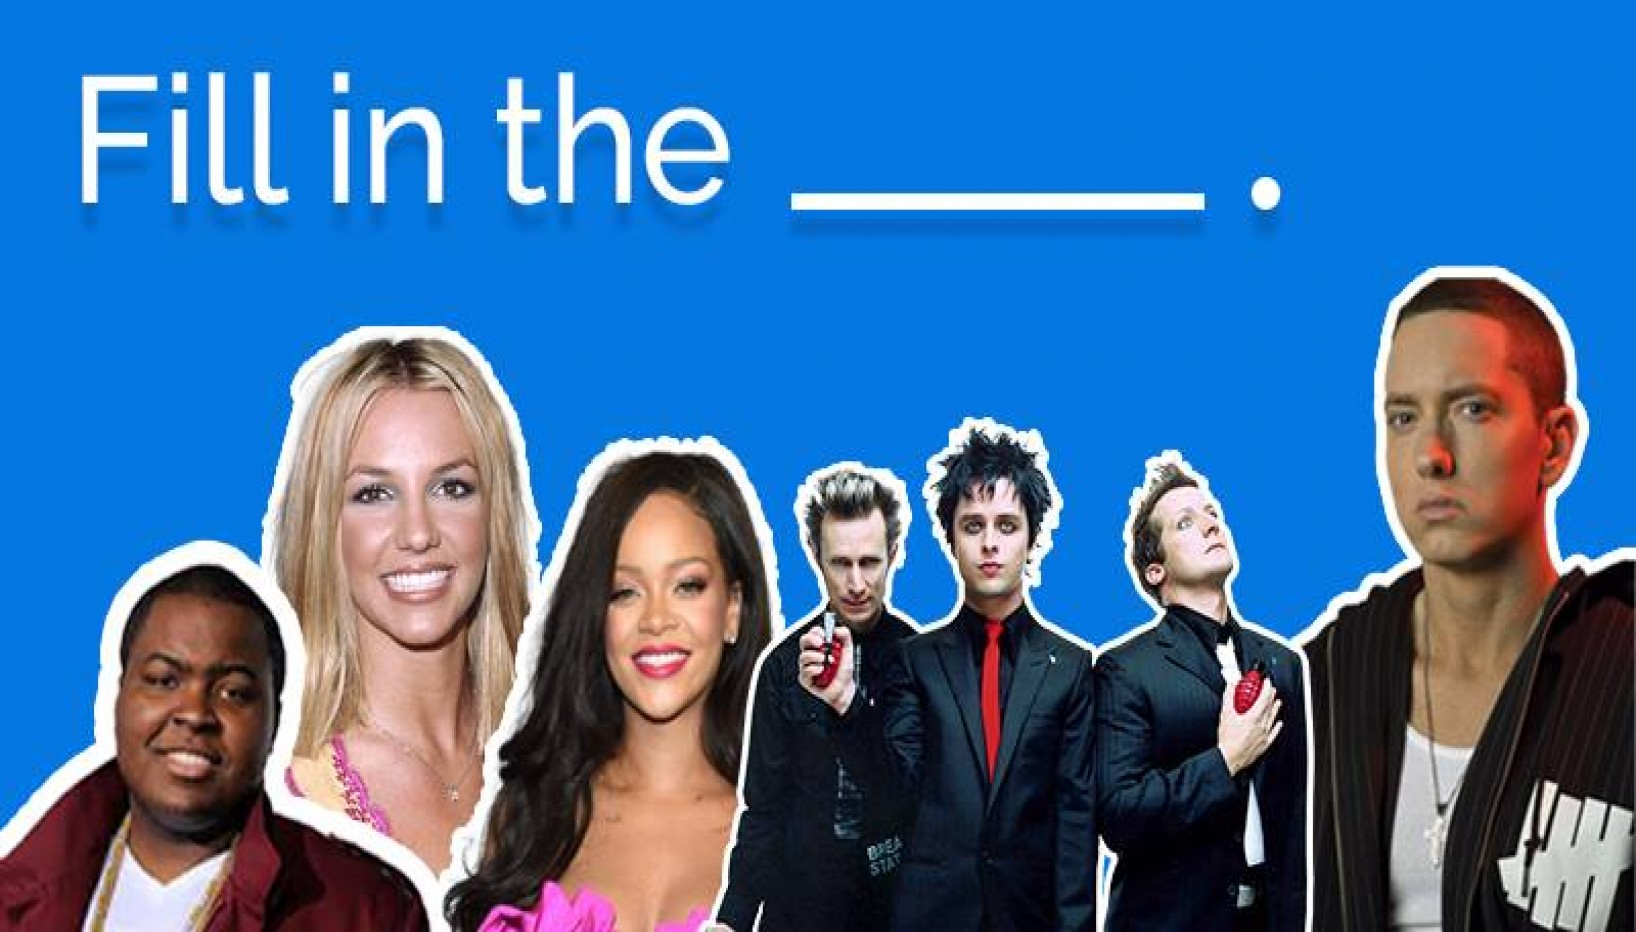 QUIZ: Can You Fill The Missing Lyrics In These 2000s Hits